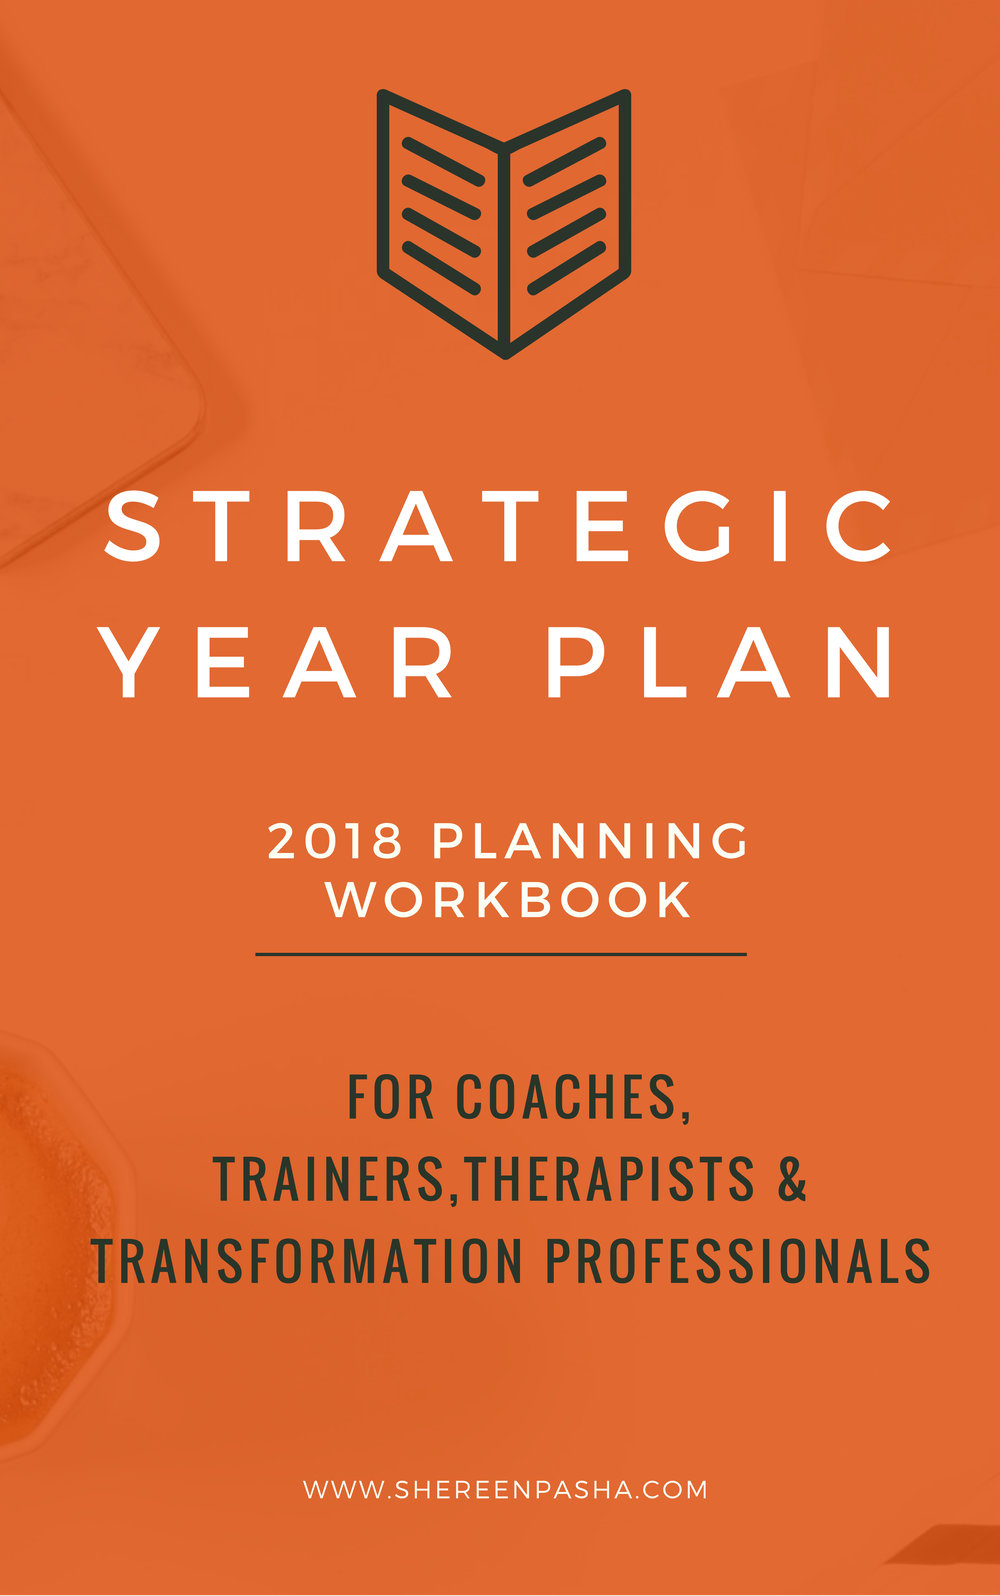 strategic-year-plan-2018.jpg